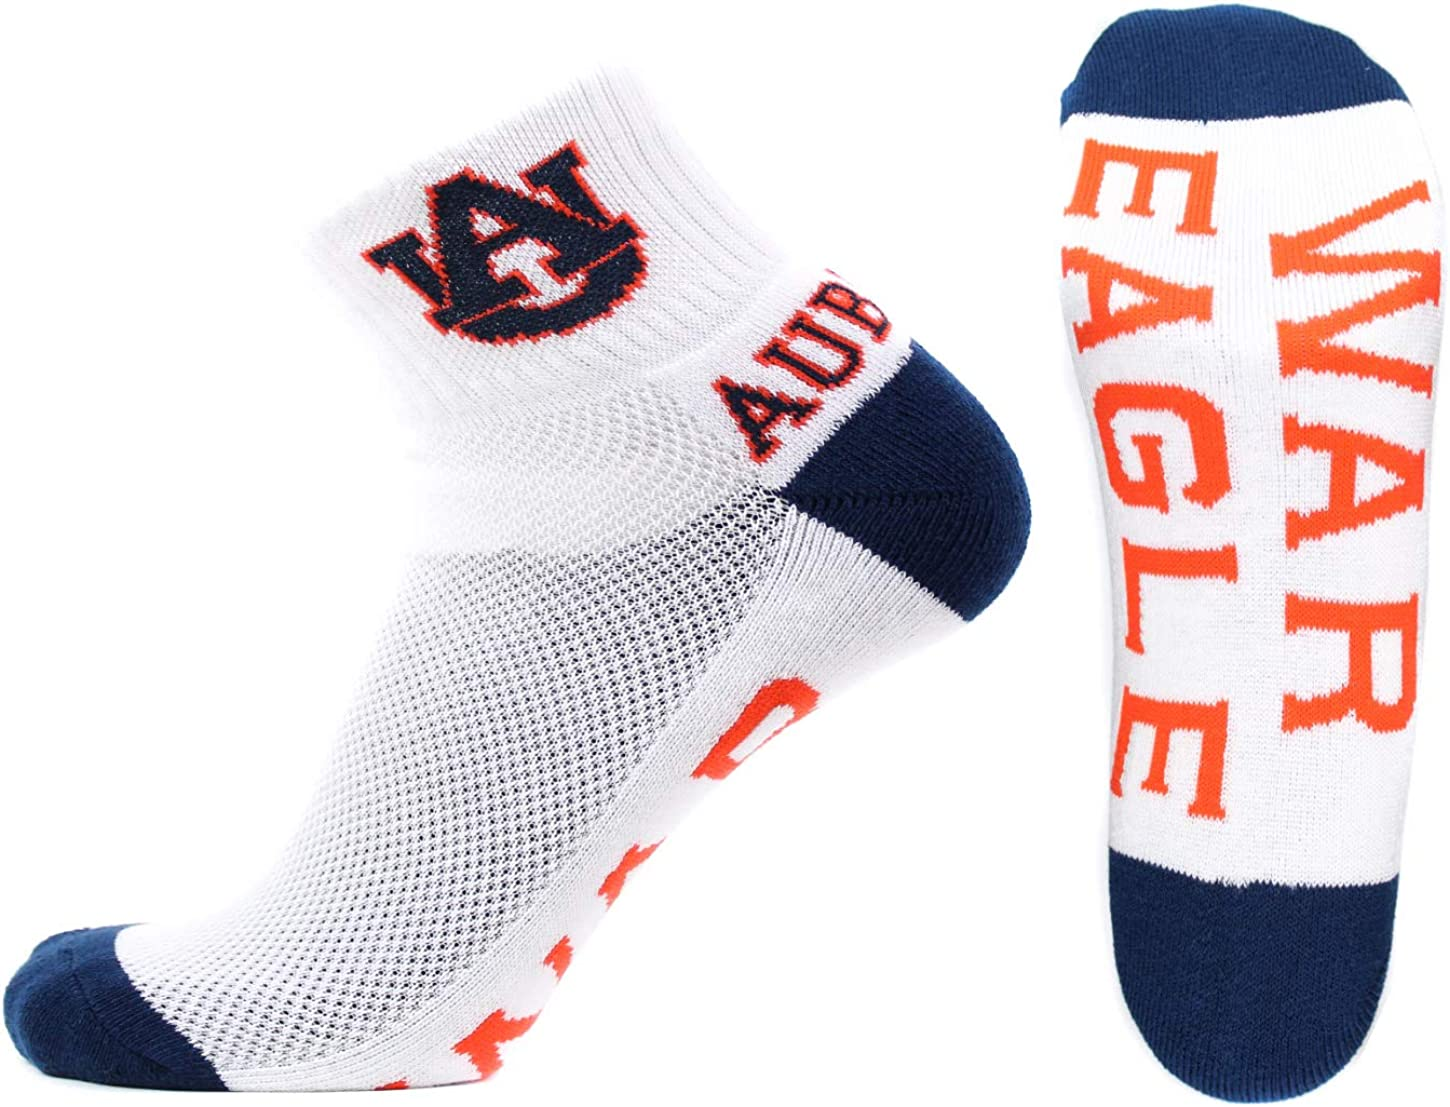 Auburn Tigers Low Cut Ankle Socks with Tab